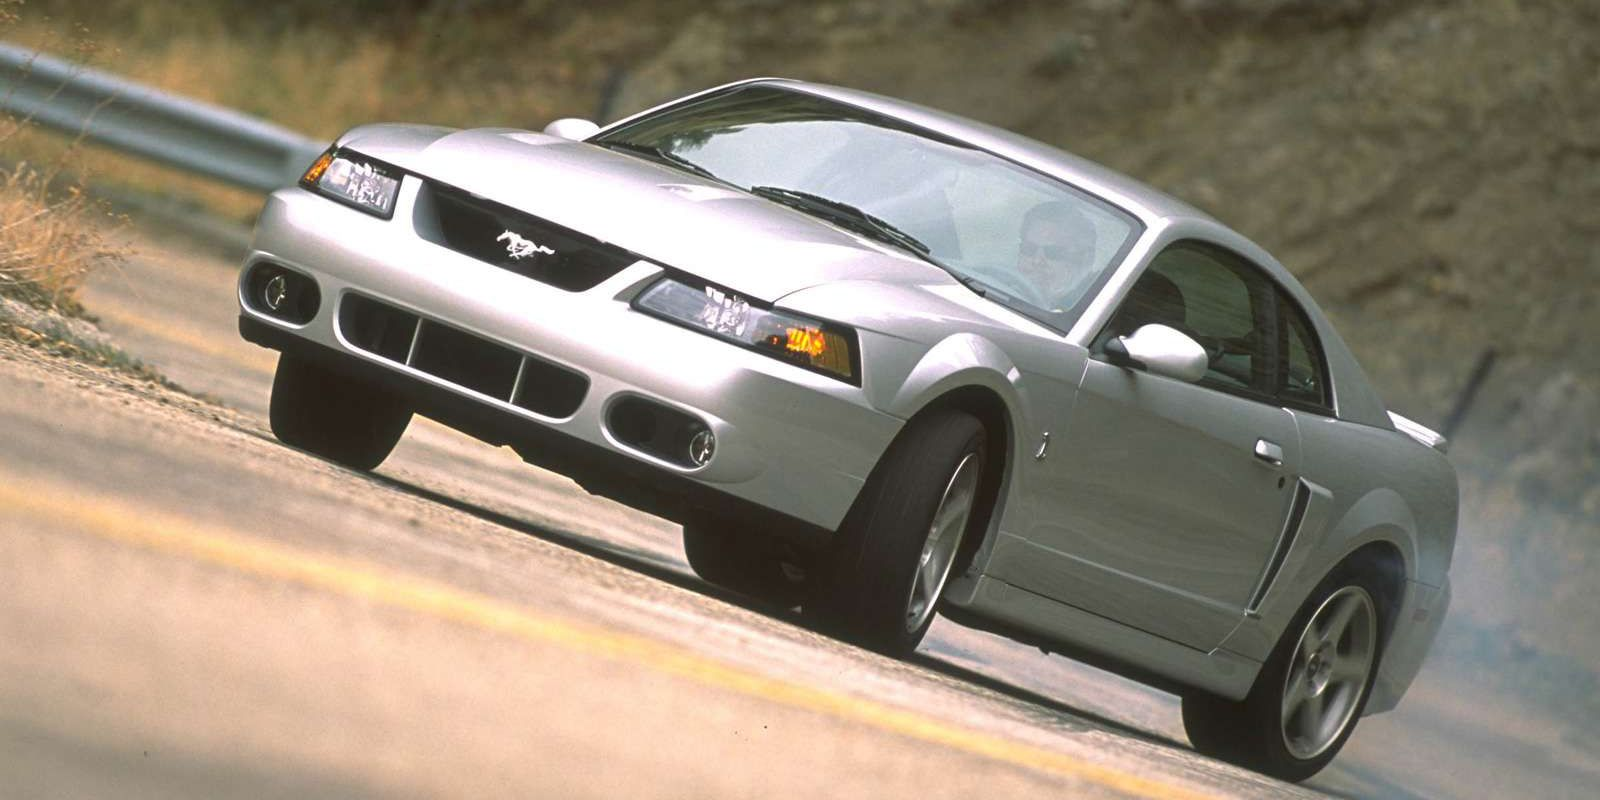 The terminator mustang svt cobra was the original hellcat